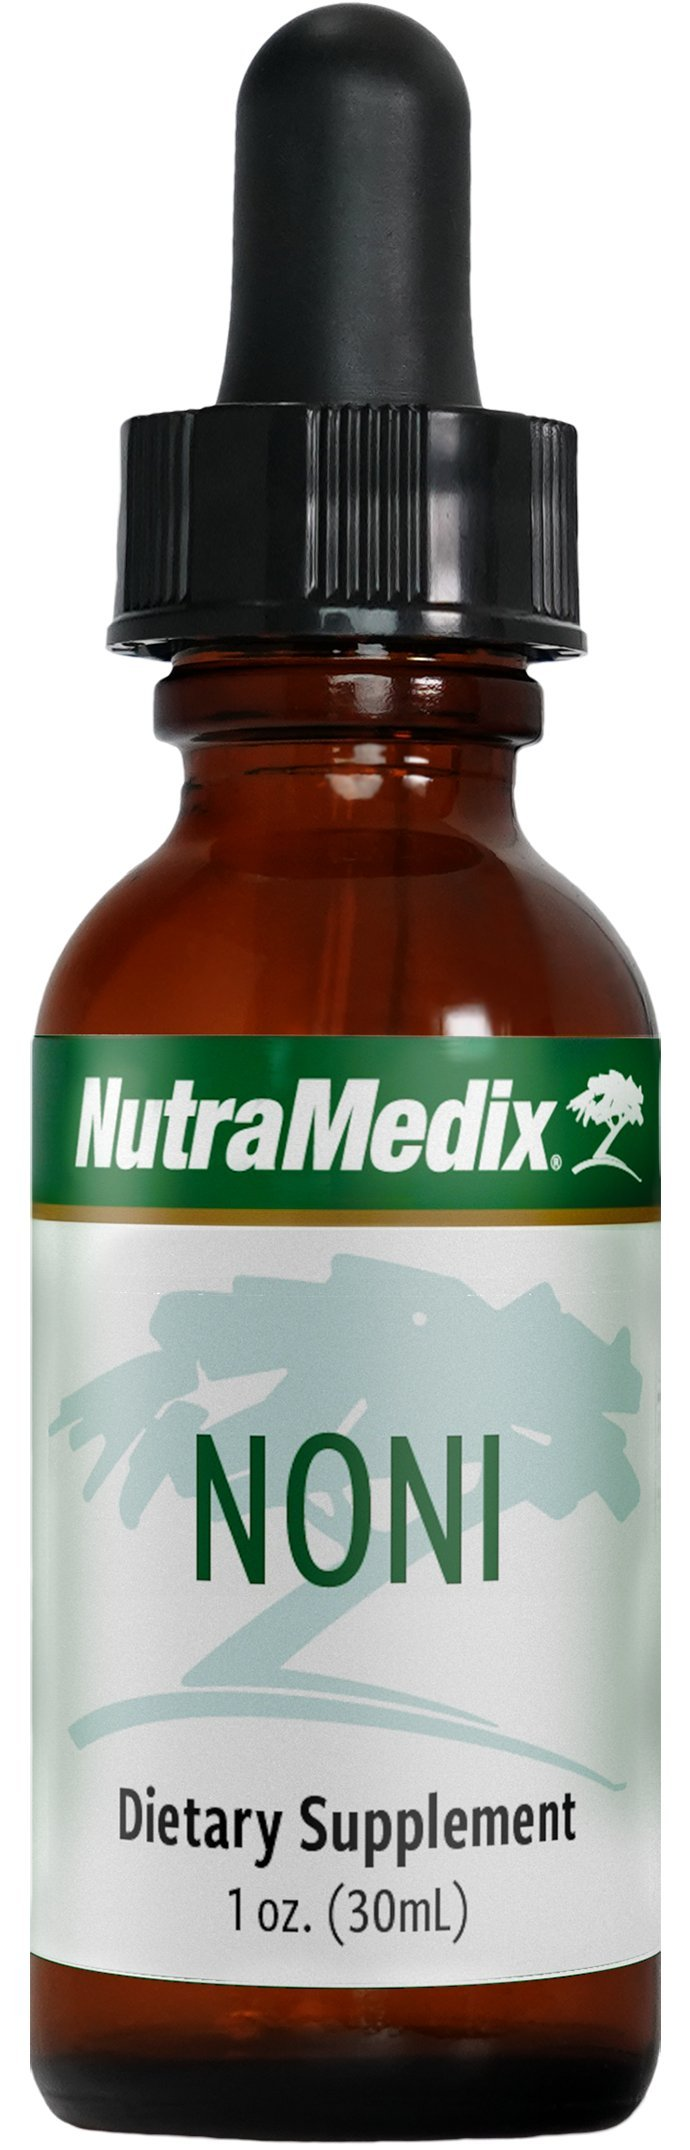 NutraMedix Noni - Noni Fruit Extract Drops, Microbial + Immune Defense (1 Ounce, 30 Milliliters)